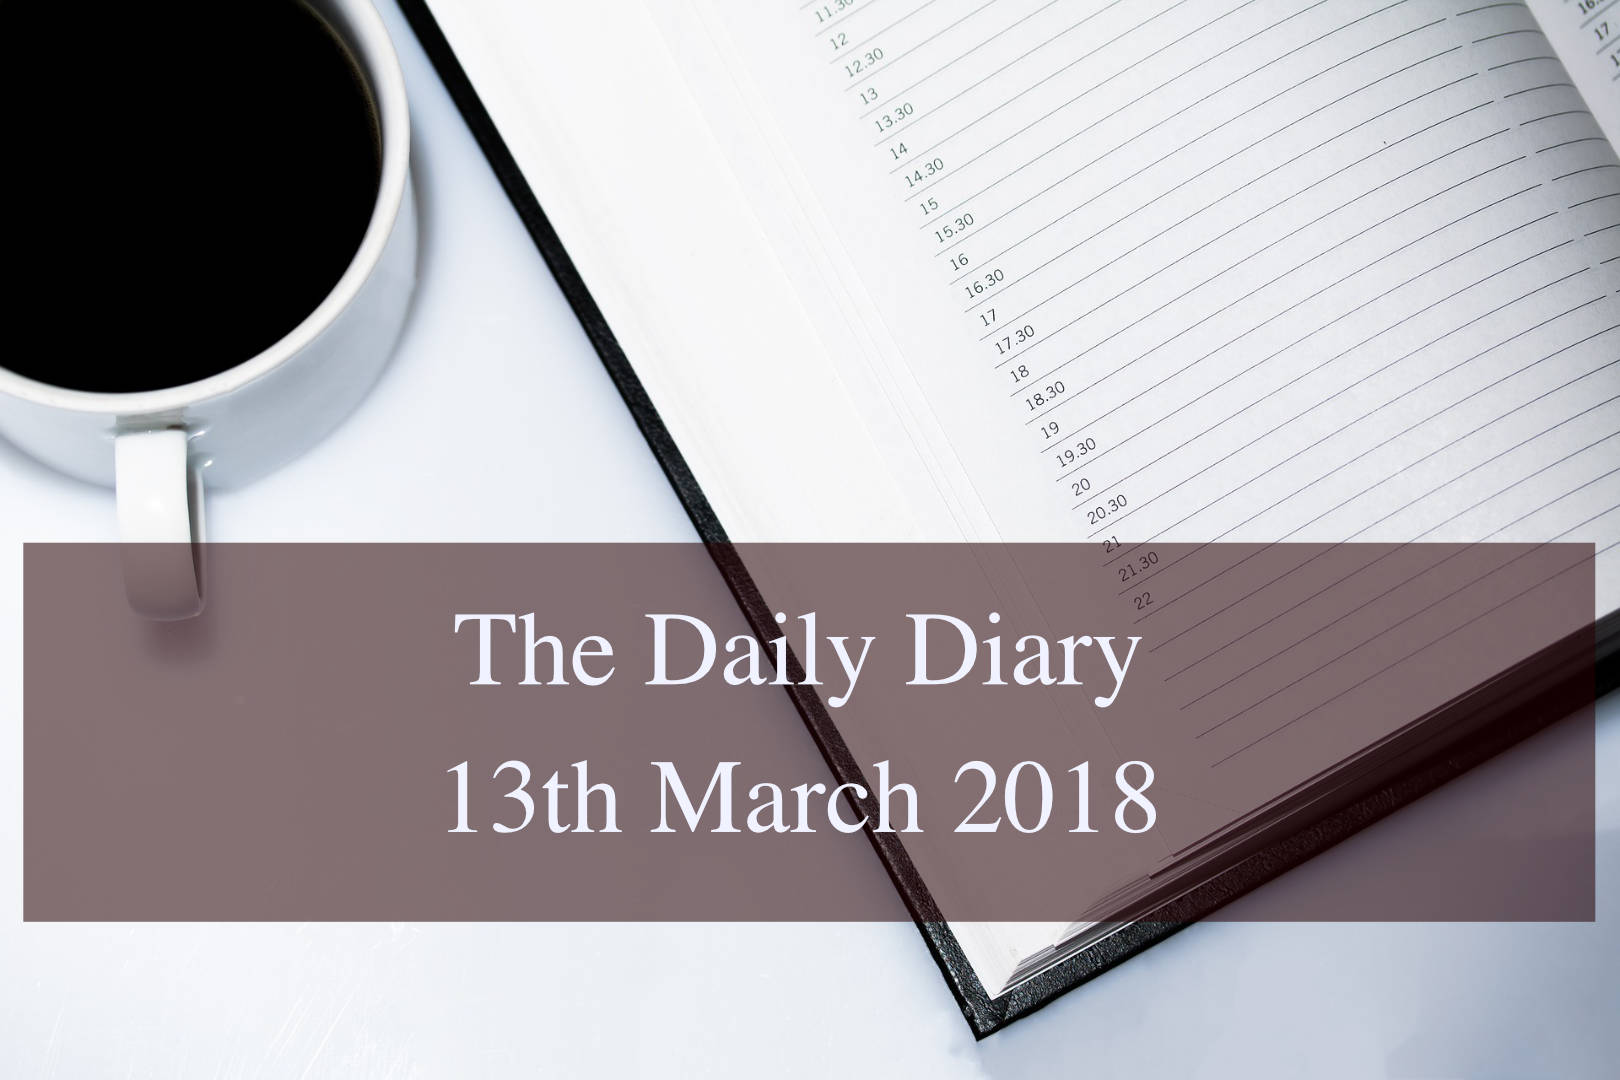 Daily Diary 13th March 2018